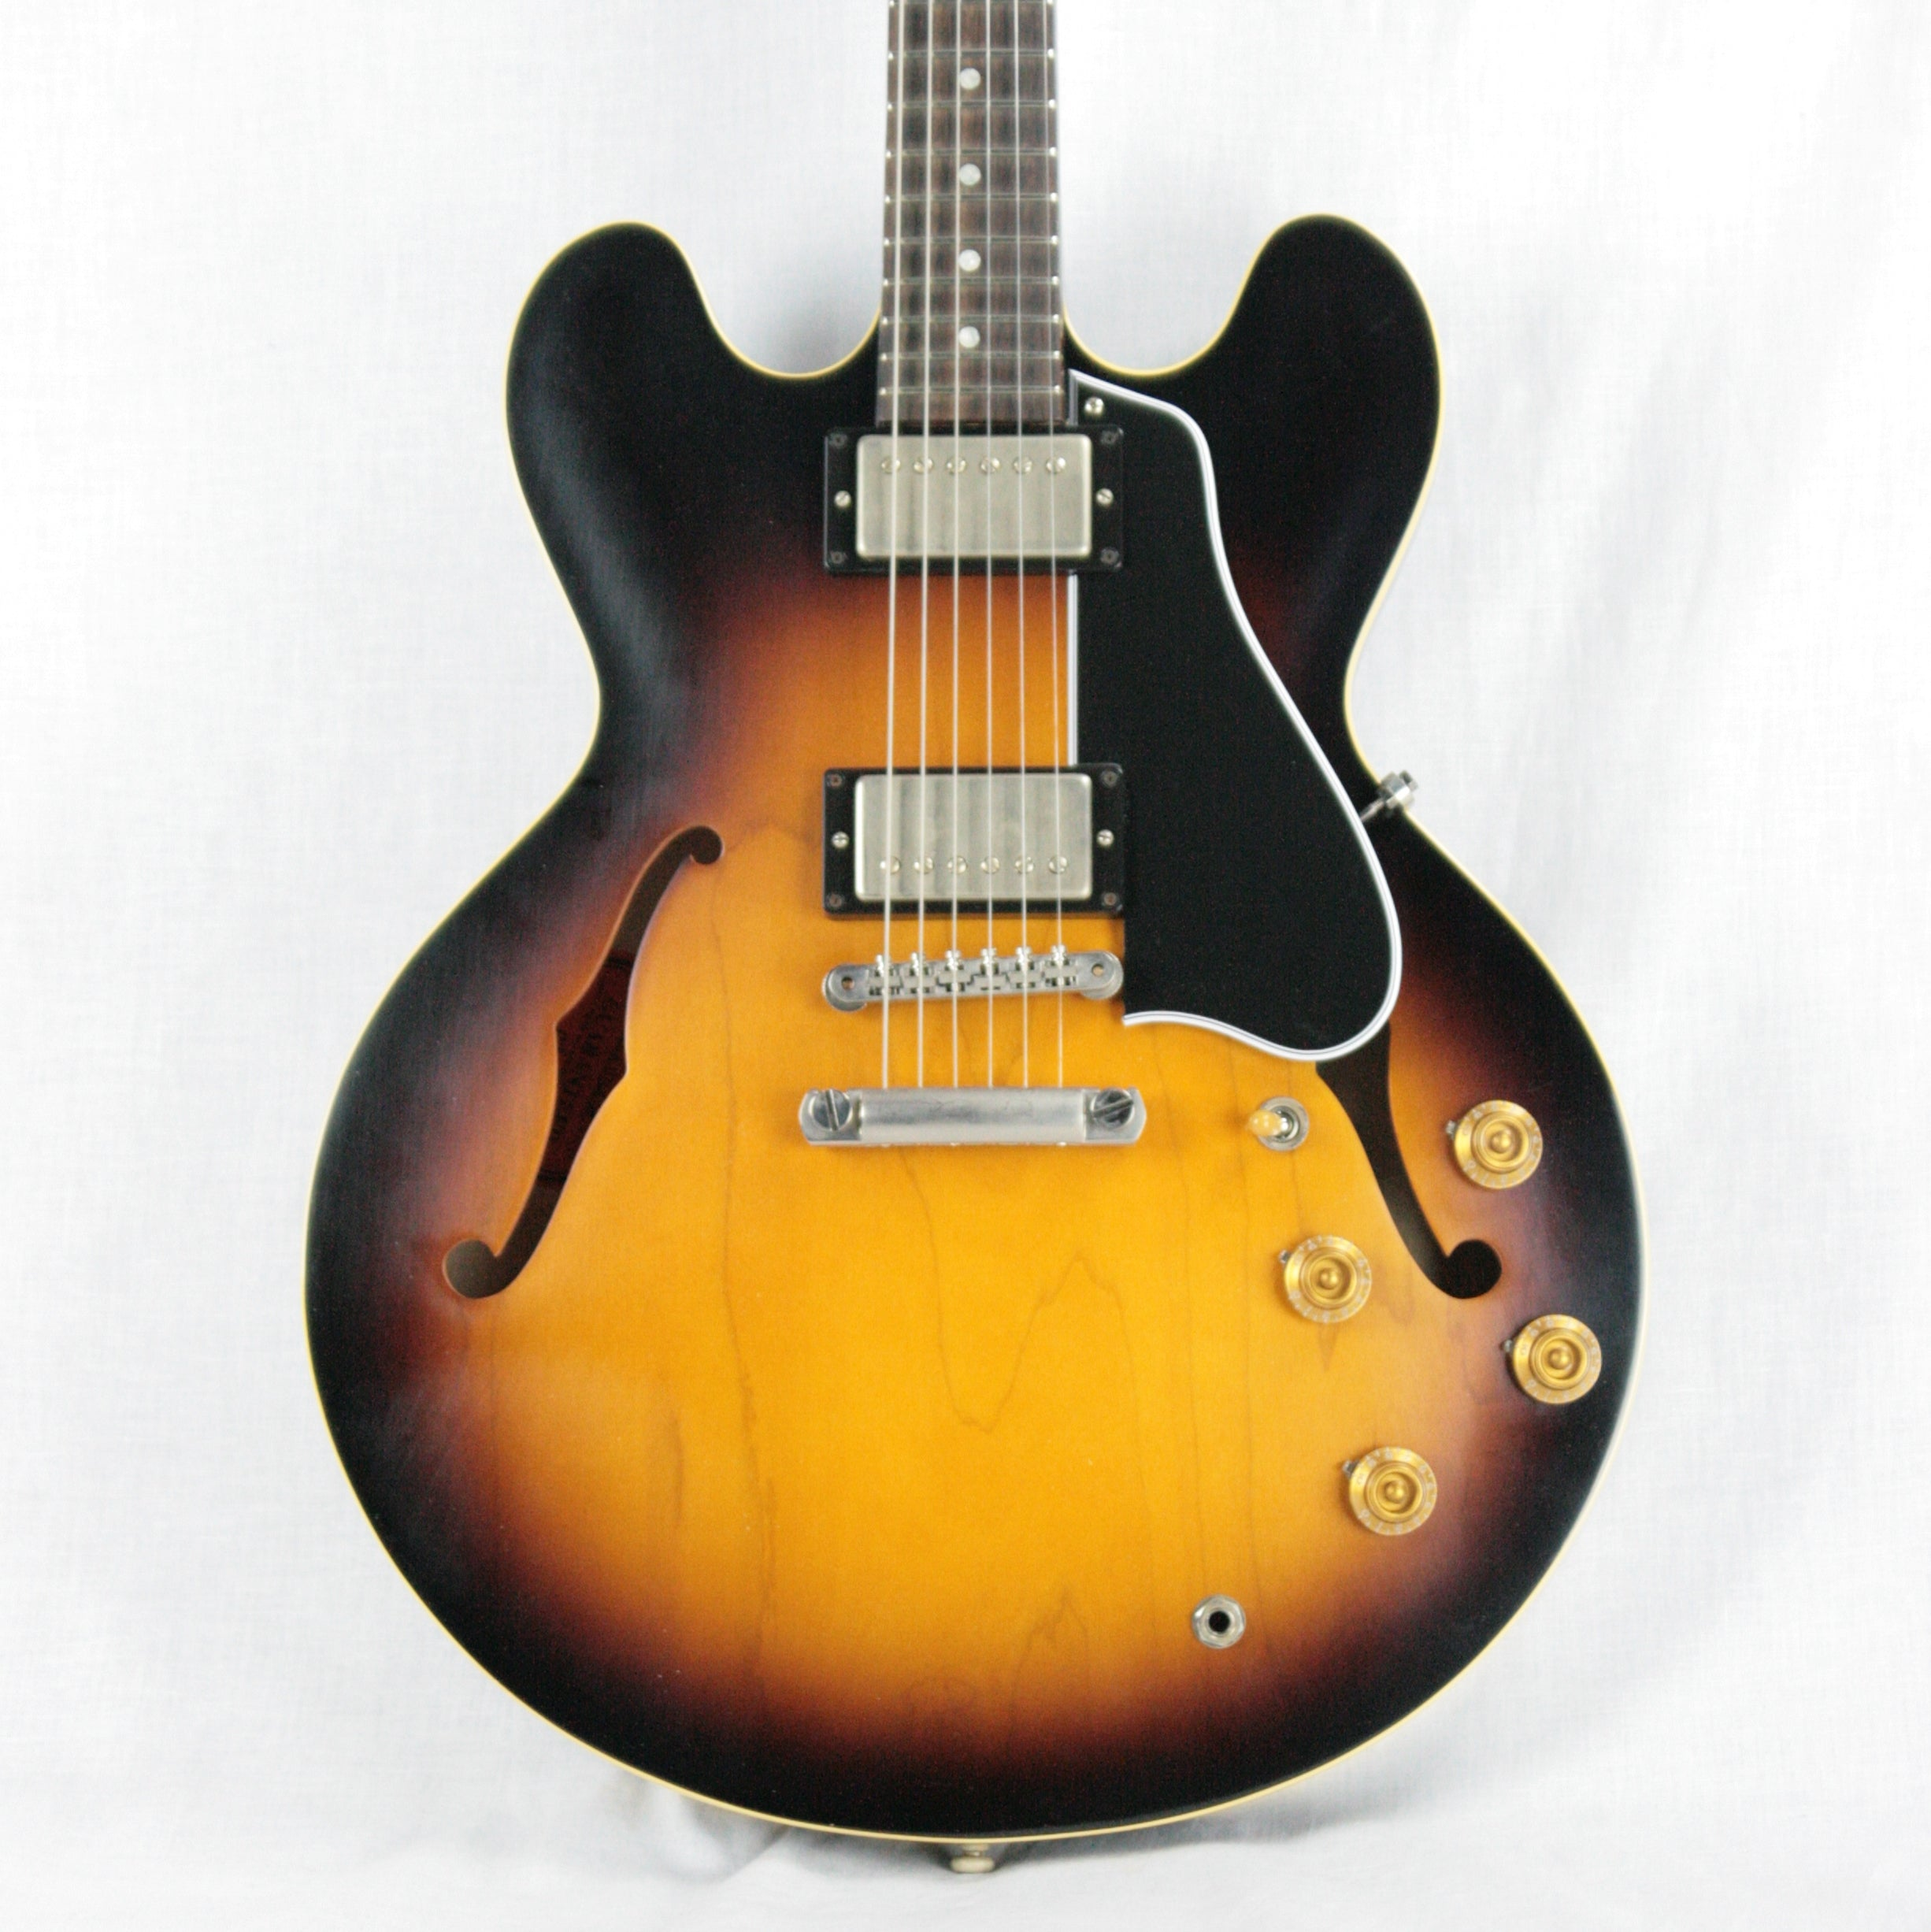 2016 Gibson Memphis '58 Reissue ES-335! 1958 Sunburst! Dot Neck No Binding!